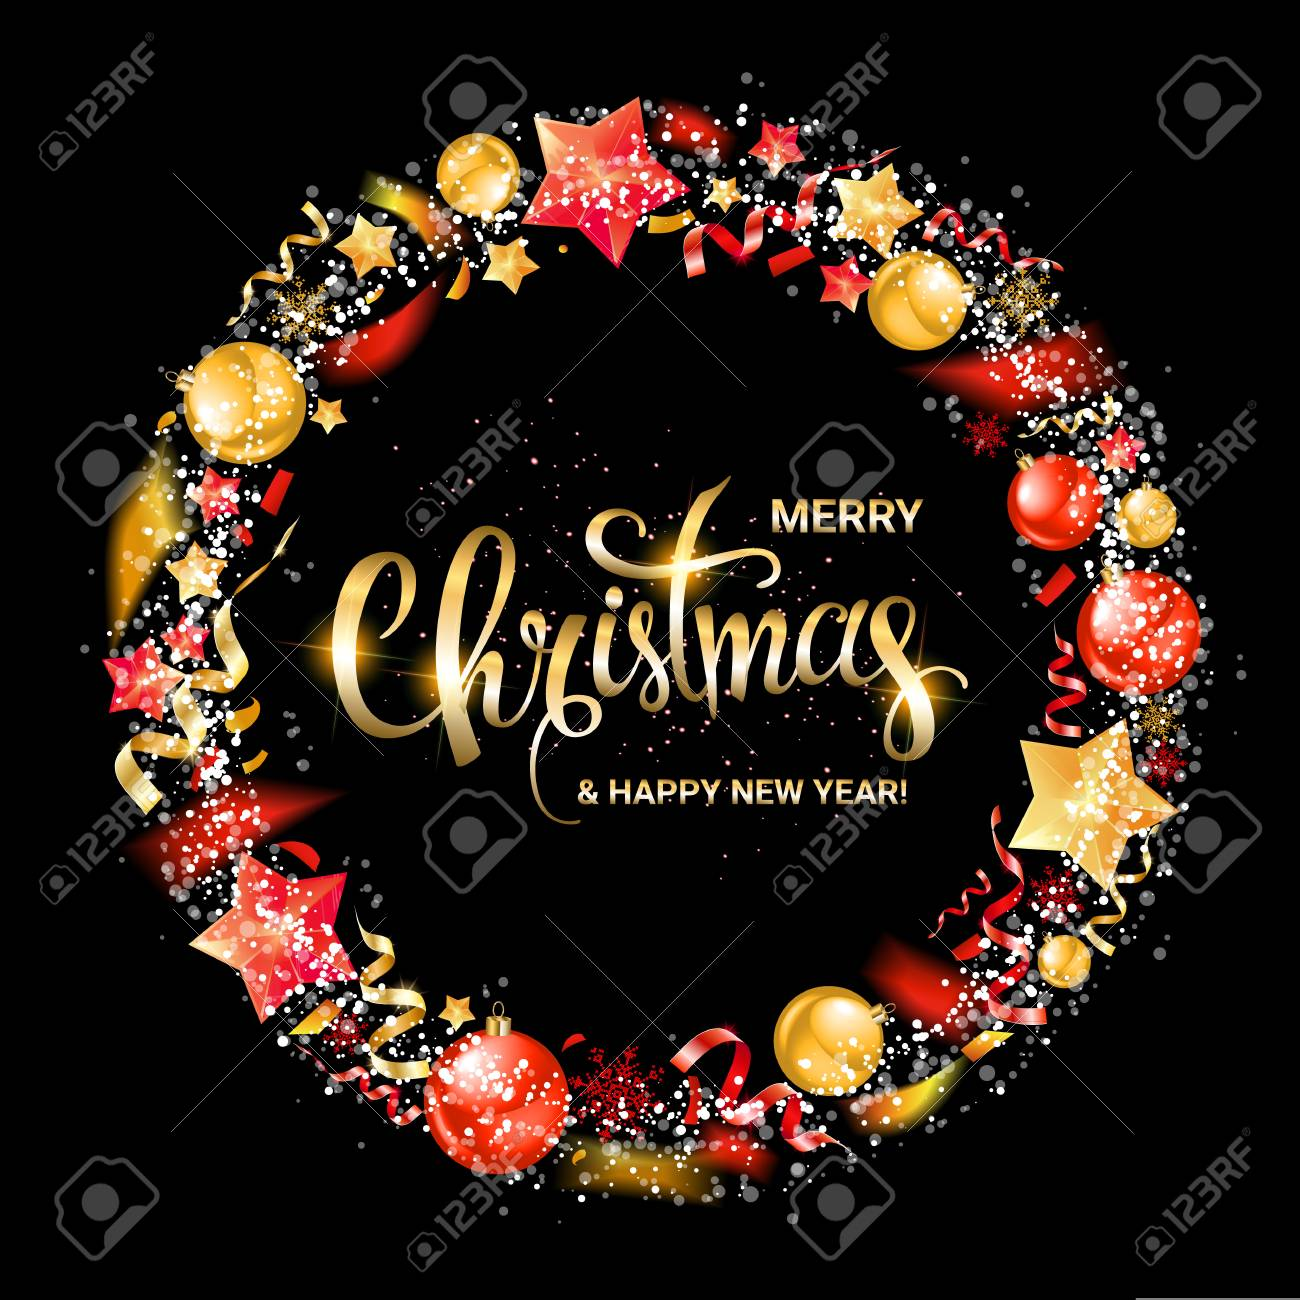 2020 Wish For Merry Christmas Merry Christmas And New Year 2020 Wish Greeting Card Lettering